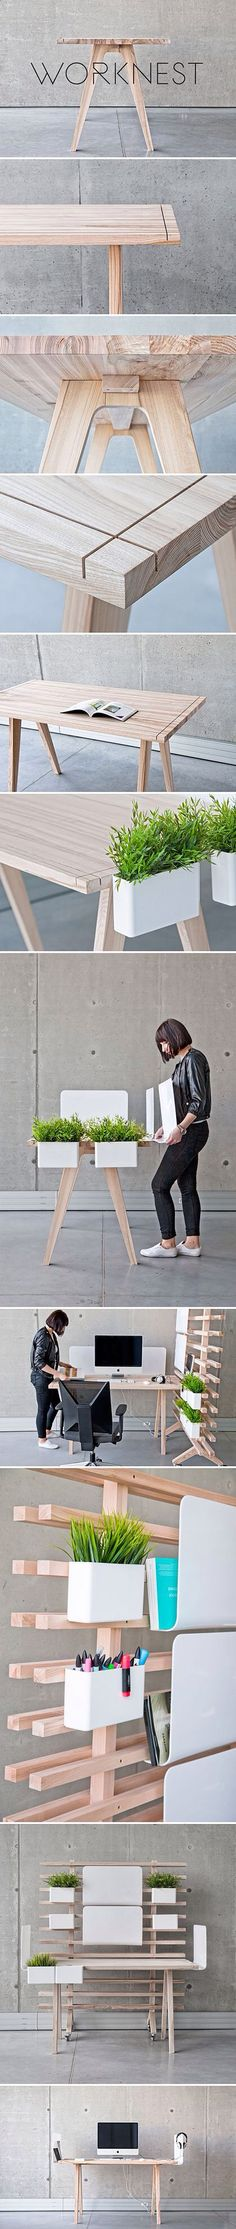 Worknest: handcrafted modular workplace, design from Wiktoria Lenart. Design detail using simple cuts. Wooden Furniture, Cool Furniture, Furniture Design, Wood Projects, Woodworking Projects, Furniture Inspiration, Wood Design, Joinery, House Design